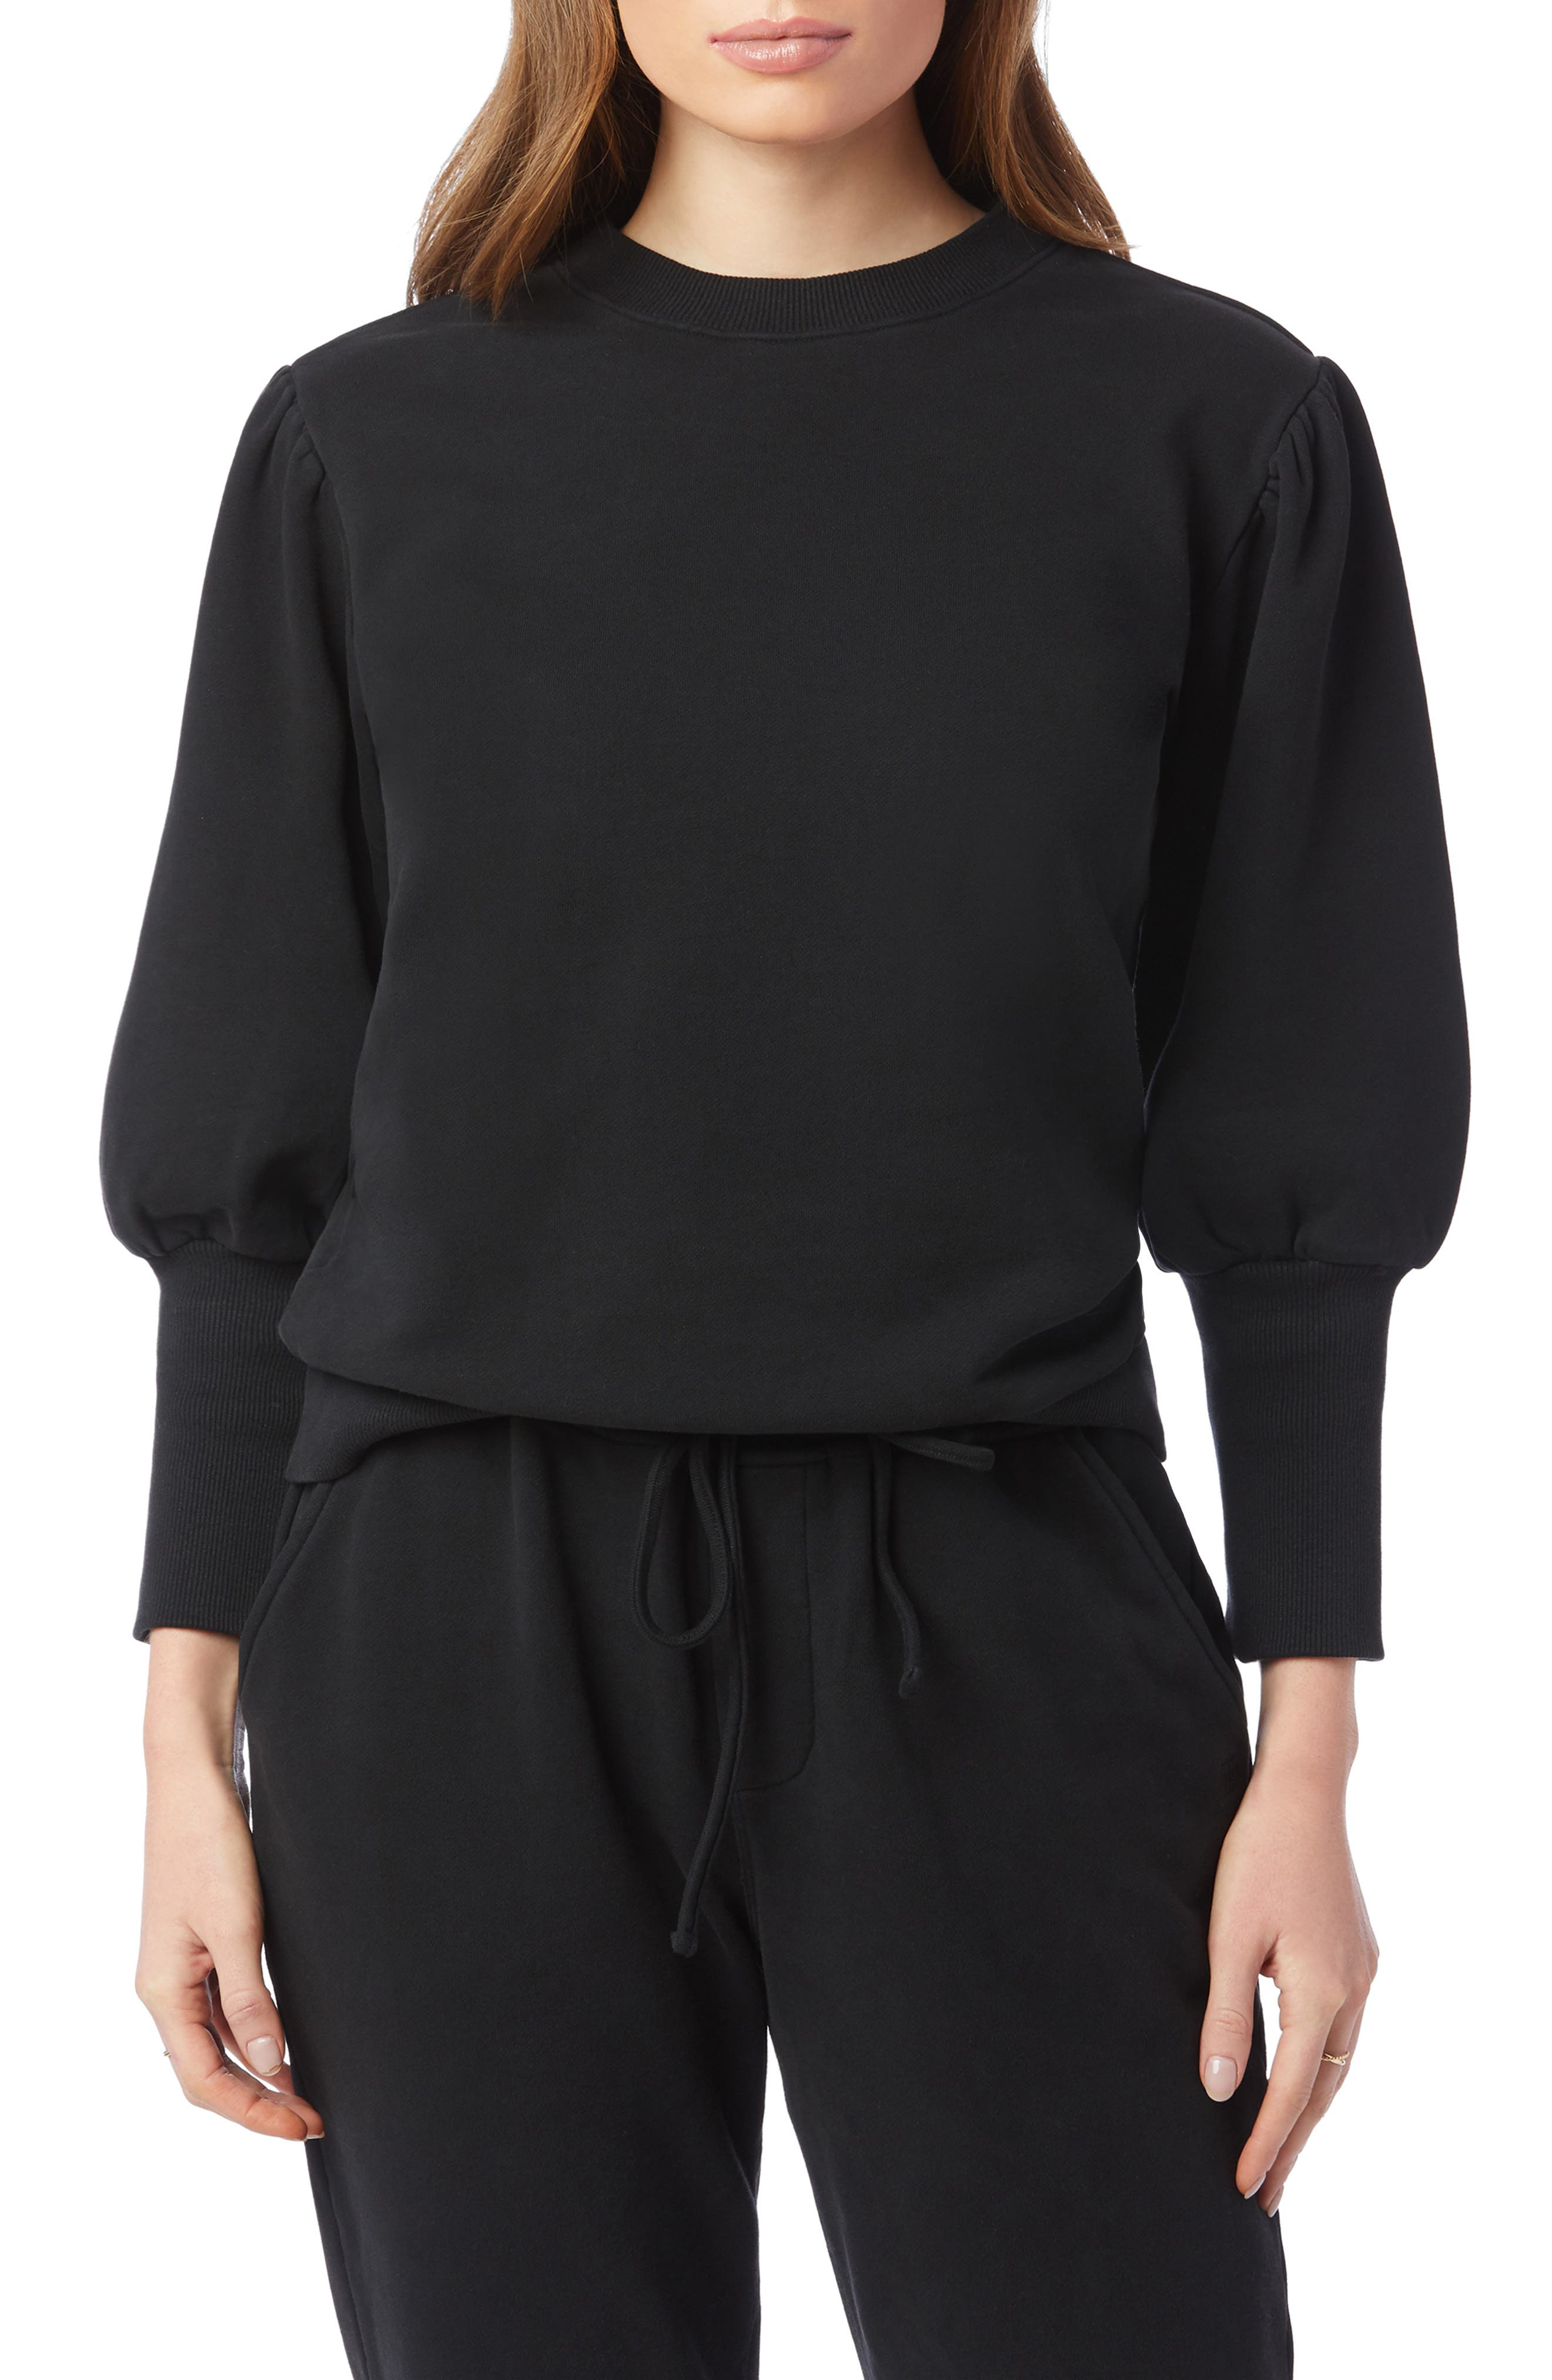 70s Workout Clothes | 80s Tracksuits, Running Shorts, Leotards Womens Joes Lonny Puff Sleeve Sweatshirt Size X-Large - Black $138.00 AT vintagedancer.com